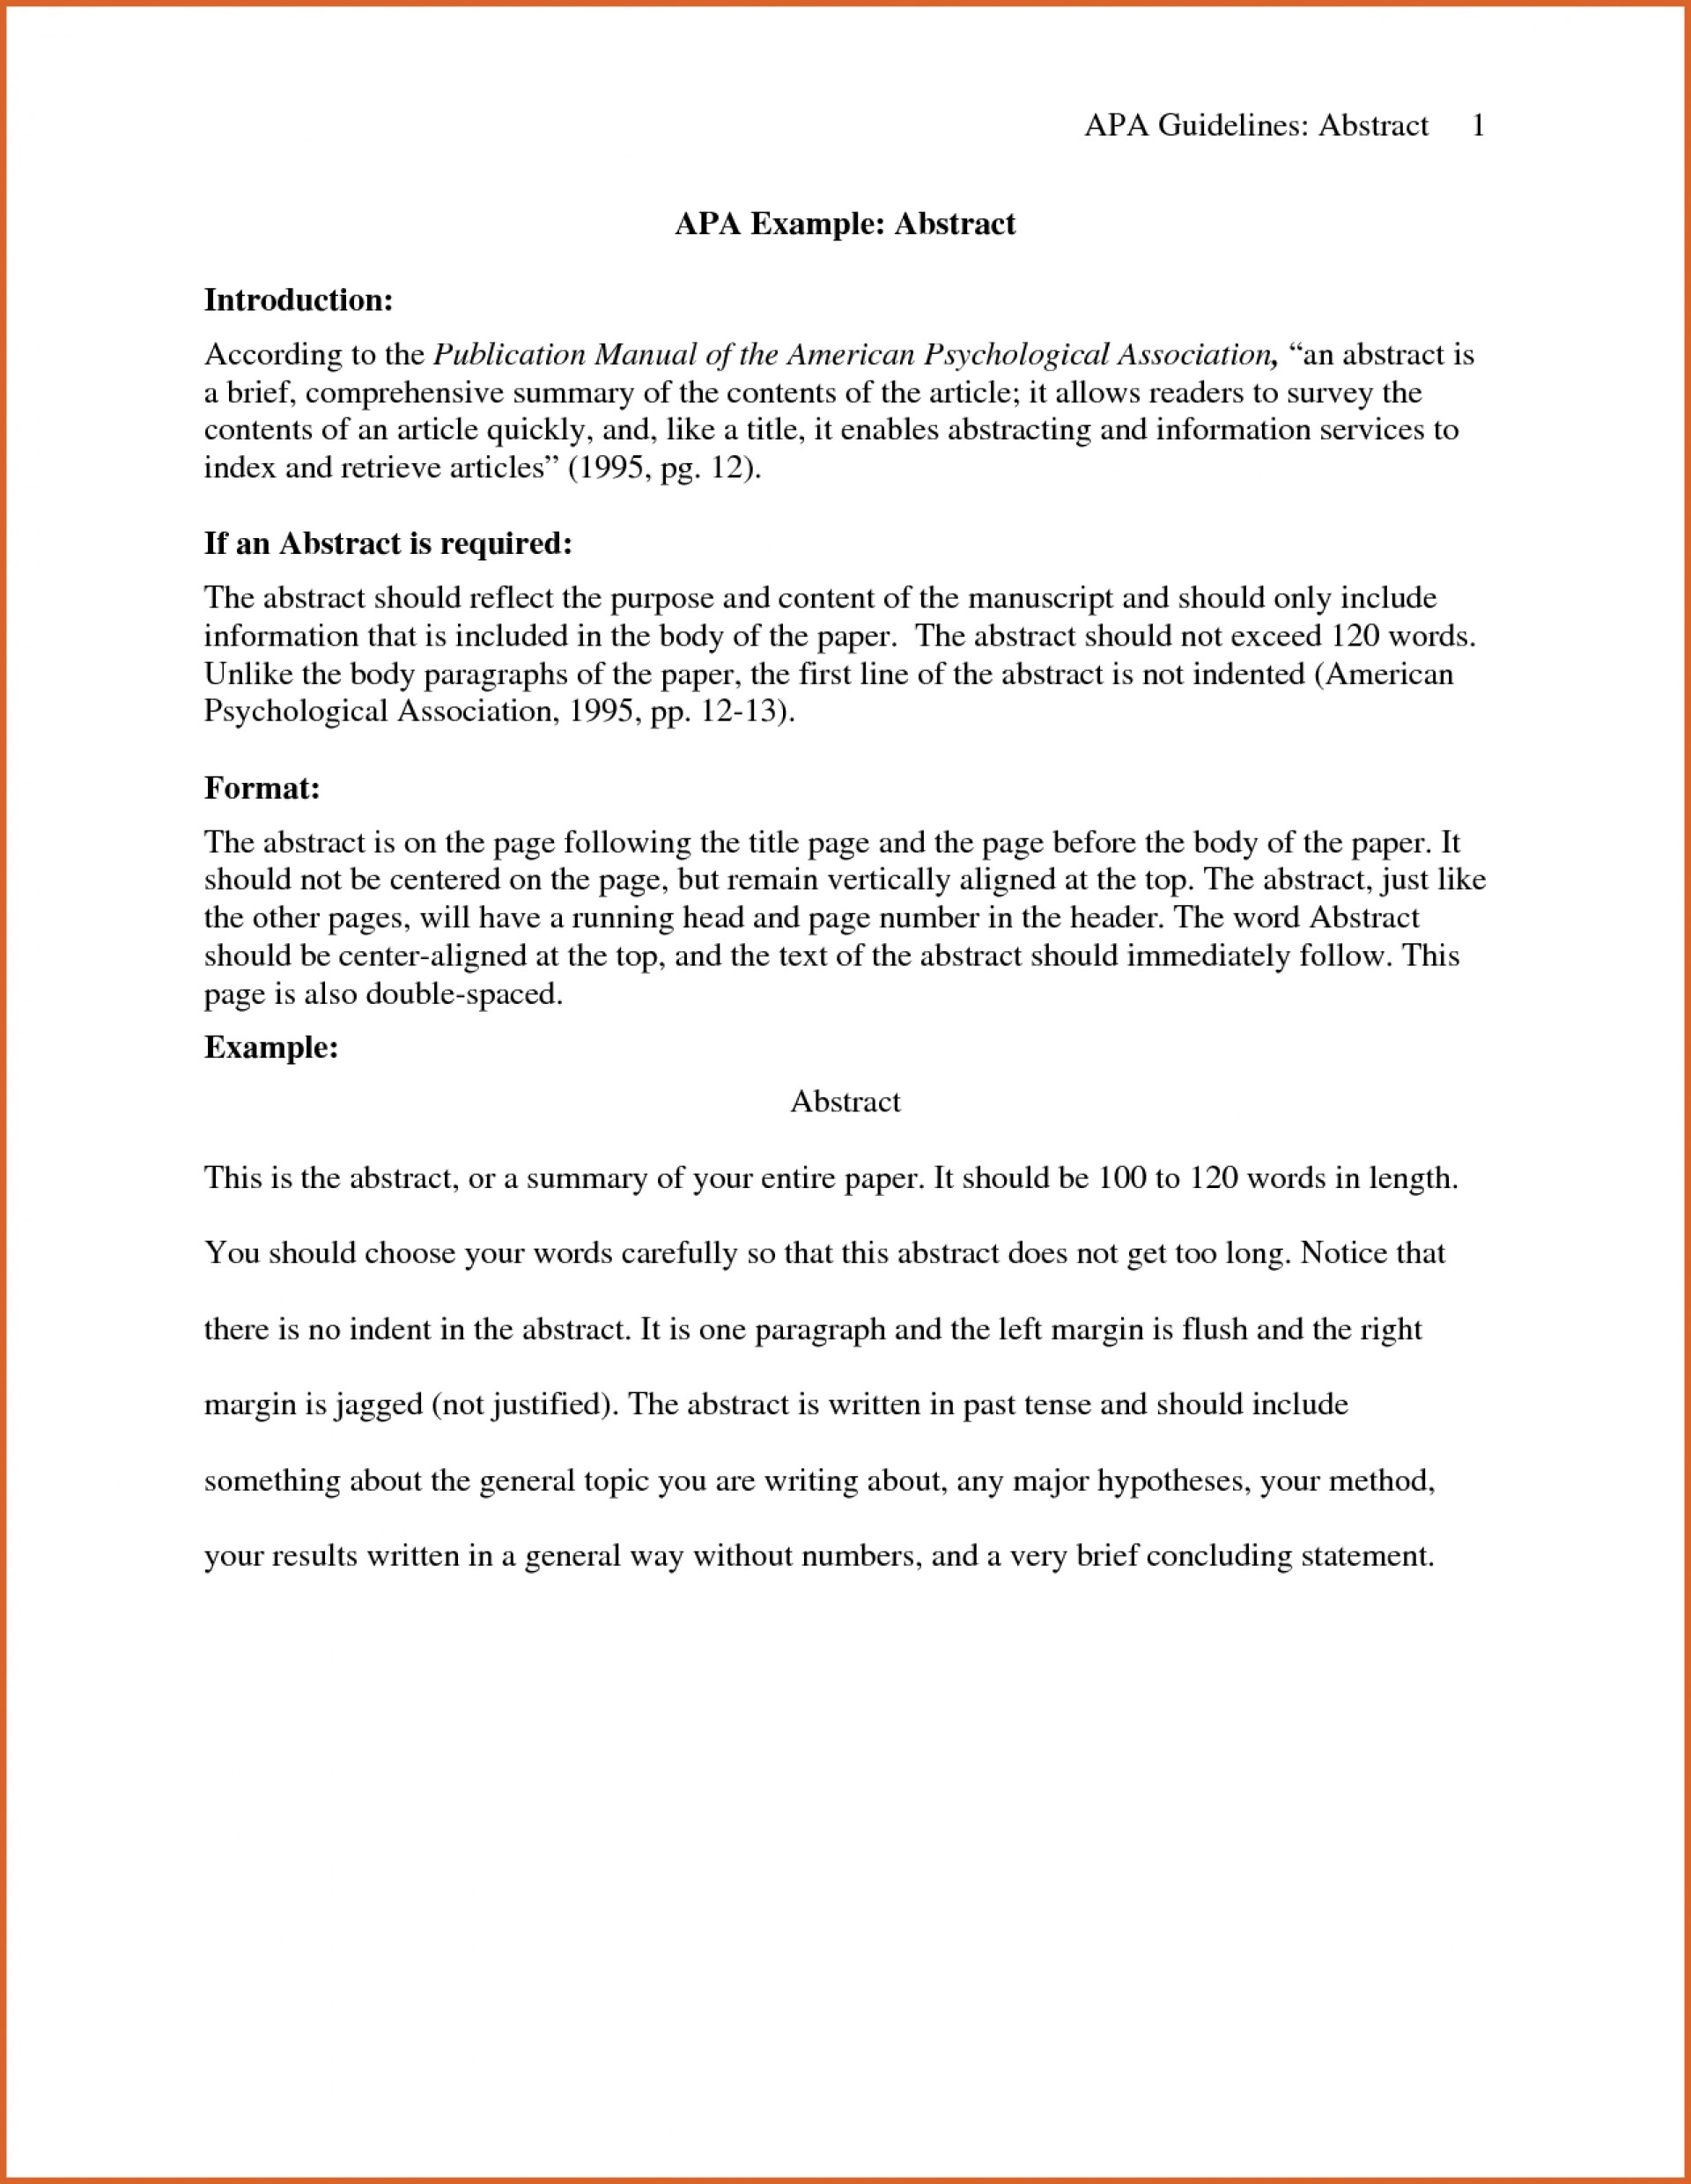 003 Ideas Collection Abstract Example Apa Sampleearch Paper Charming Of For Sensational Research Writing An A Style Sample 1920